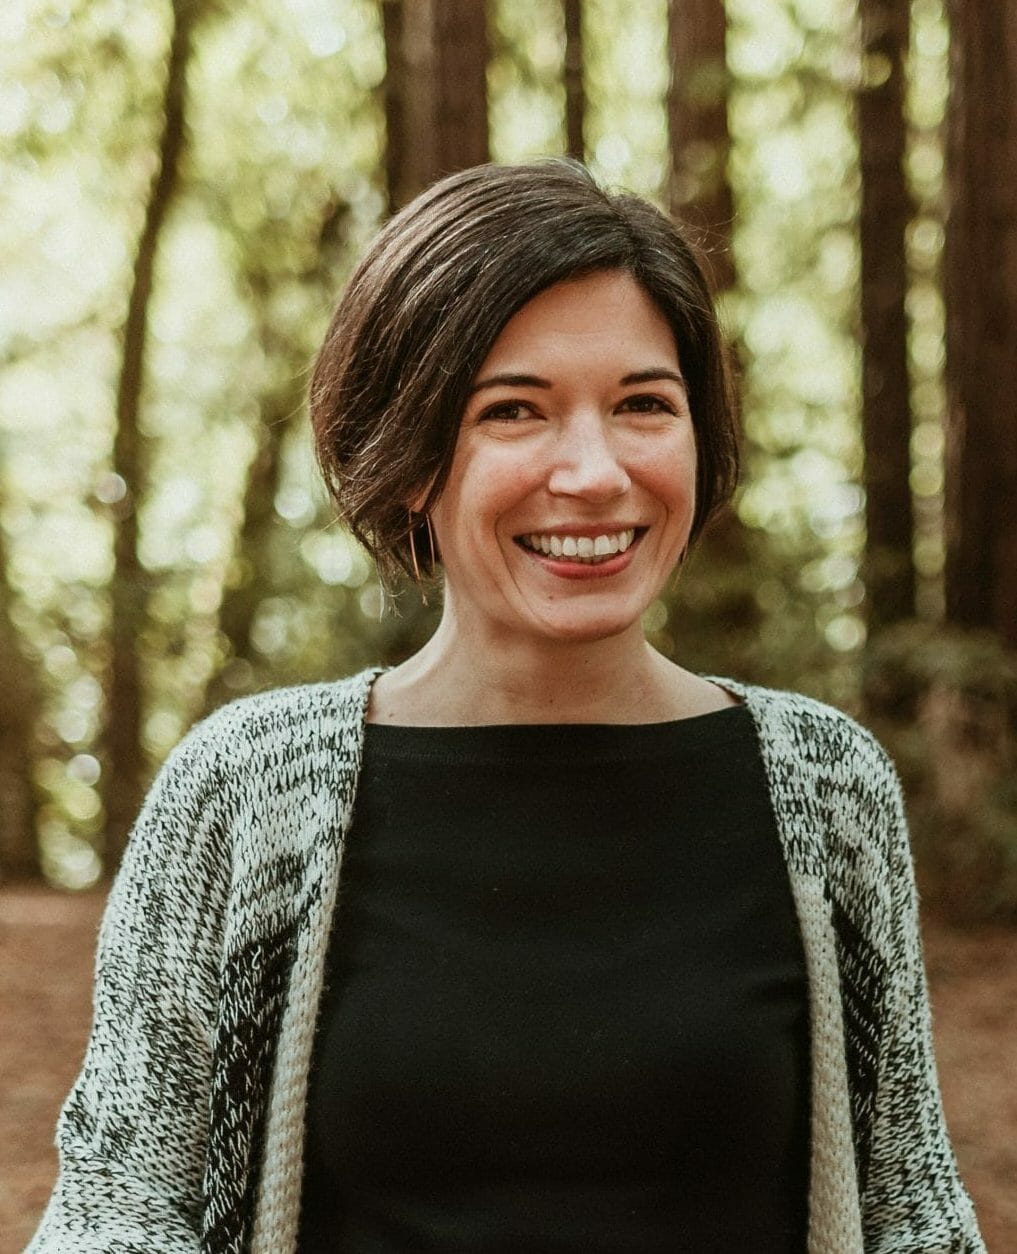 Meredyth stands outside with greenery and trees behind her, and smiles at the camera. She wears a black shirt and grey cardigan.